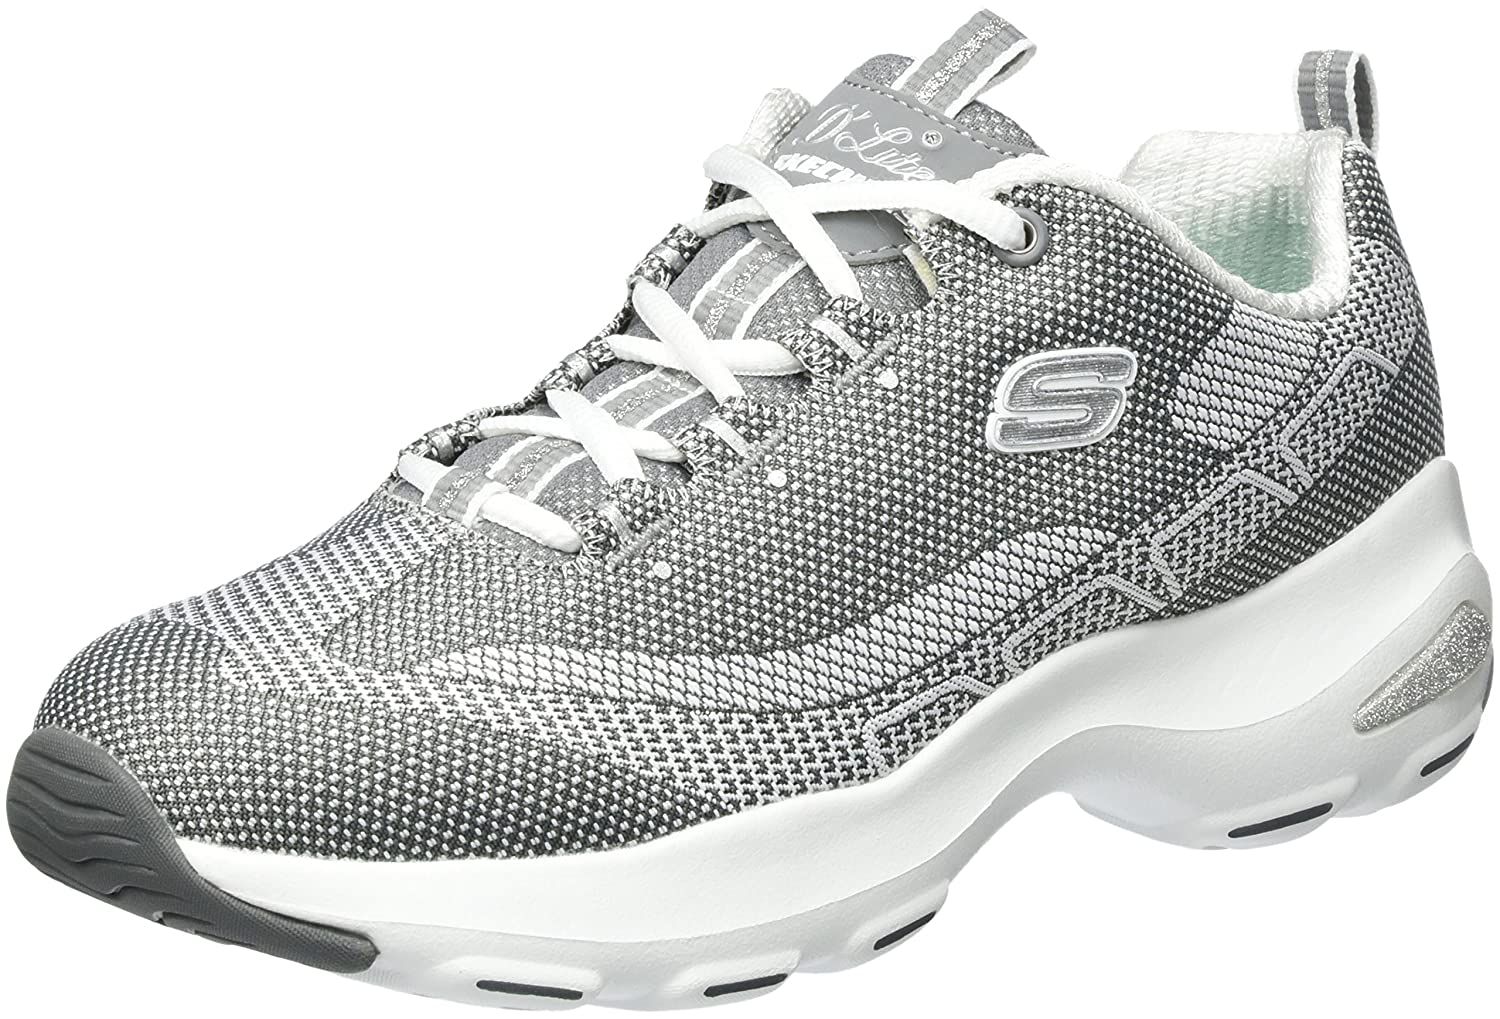 Skechers Women's Dlite Ultra Sneaker B01MS3SOY0 6.5 B(M) US|Gray White